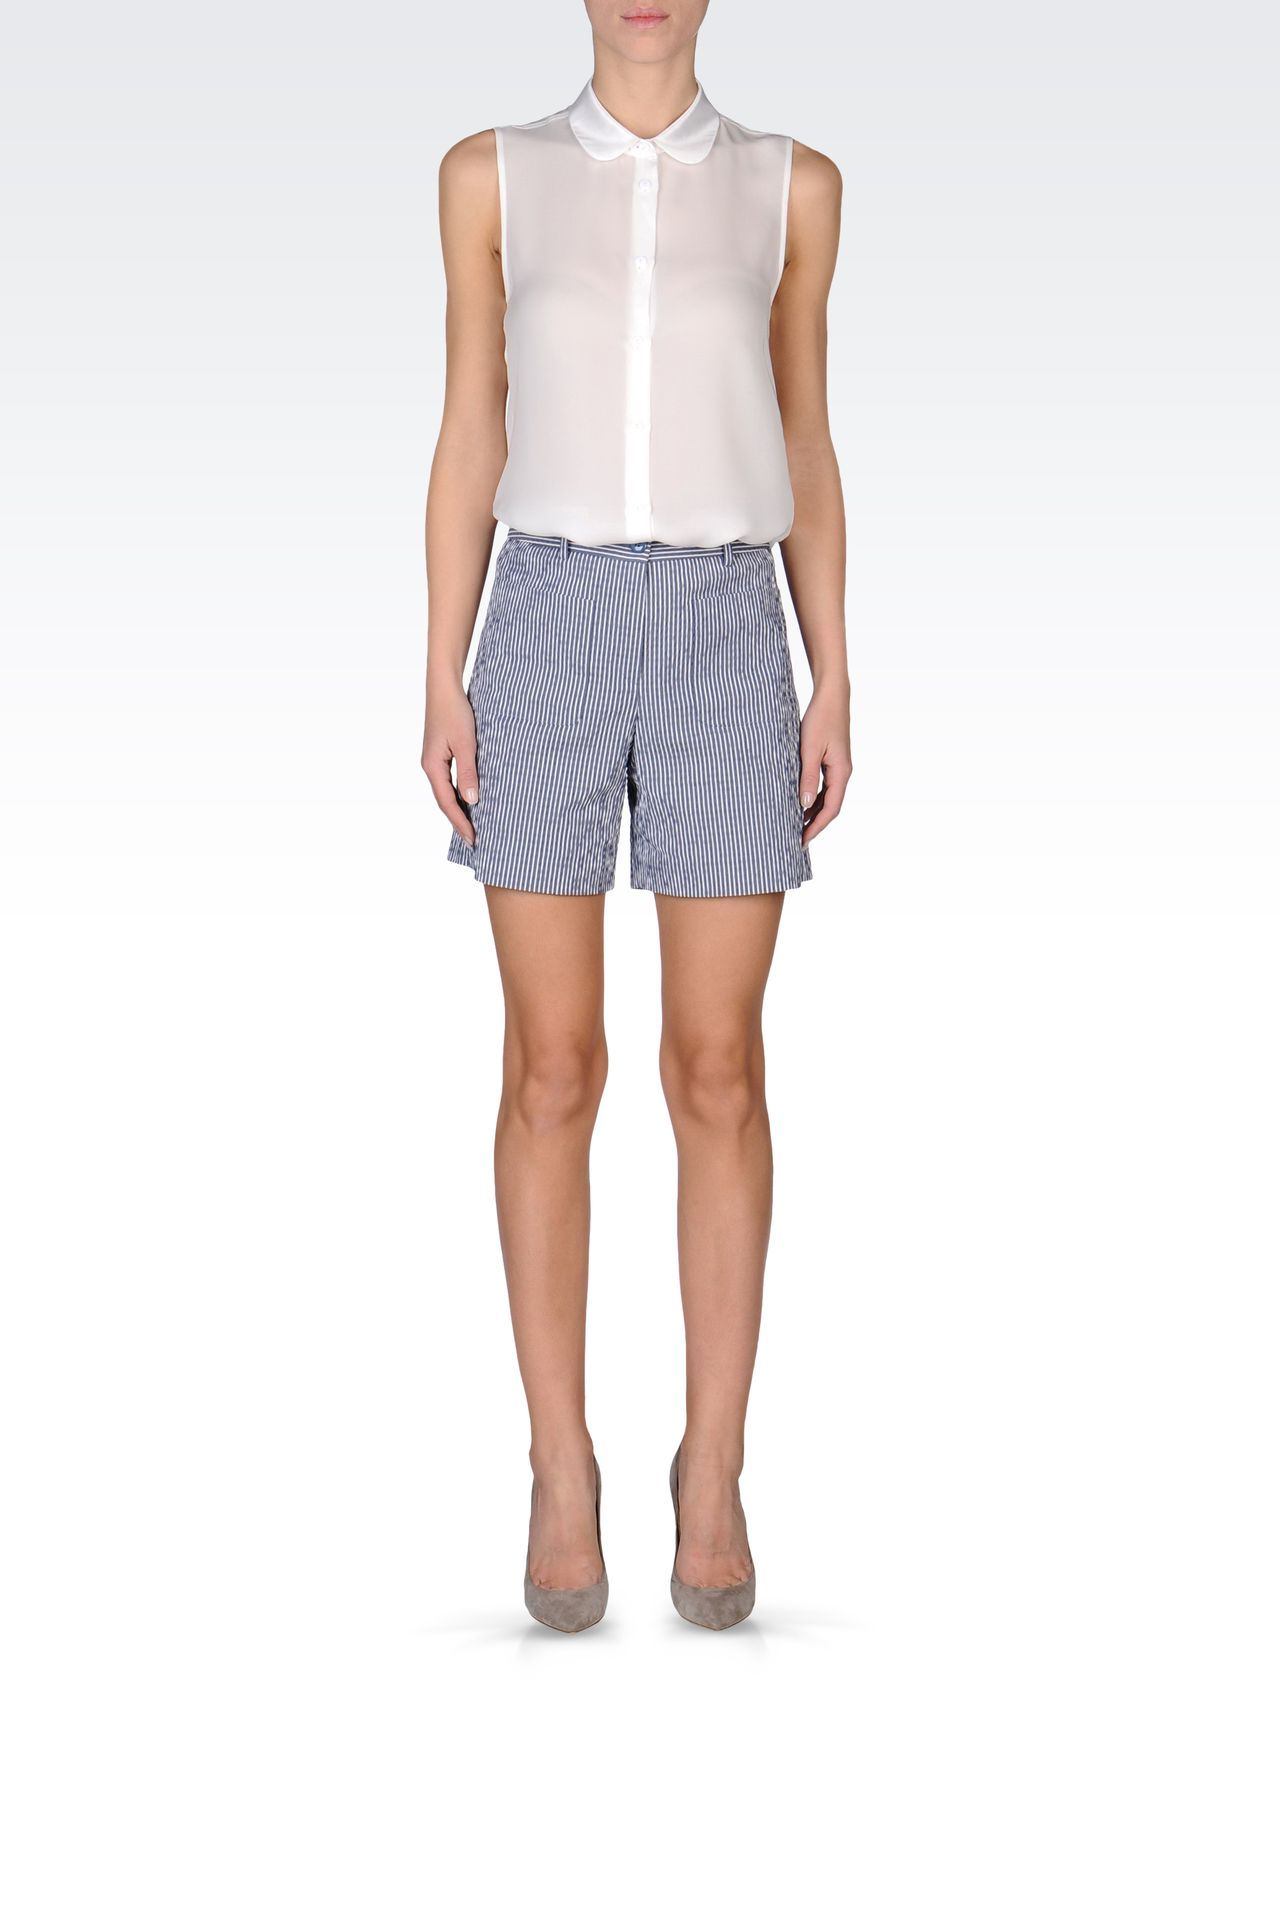 33a8929d79 Emporio Armani Women Bermuda Short - BERMUDA SHORTS IN STRIPED ...